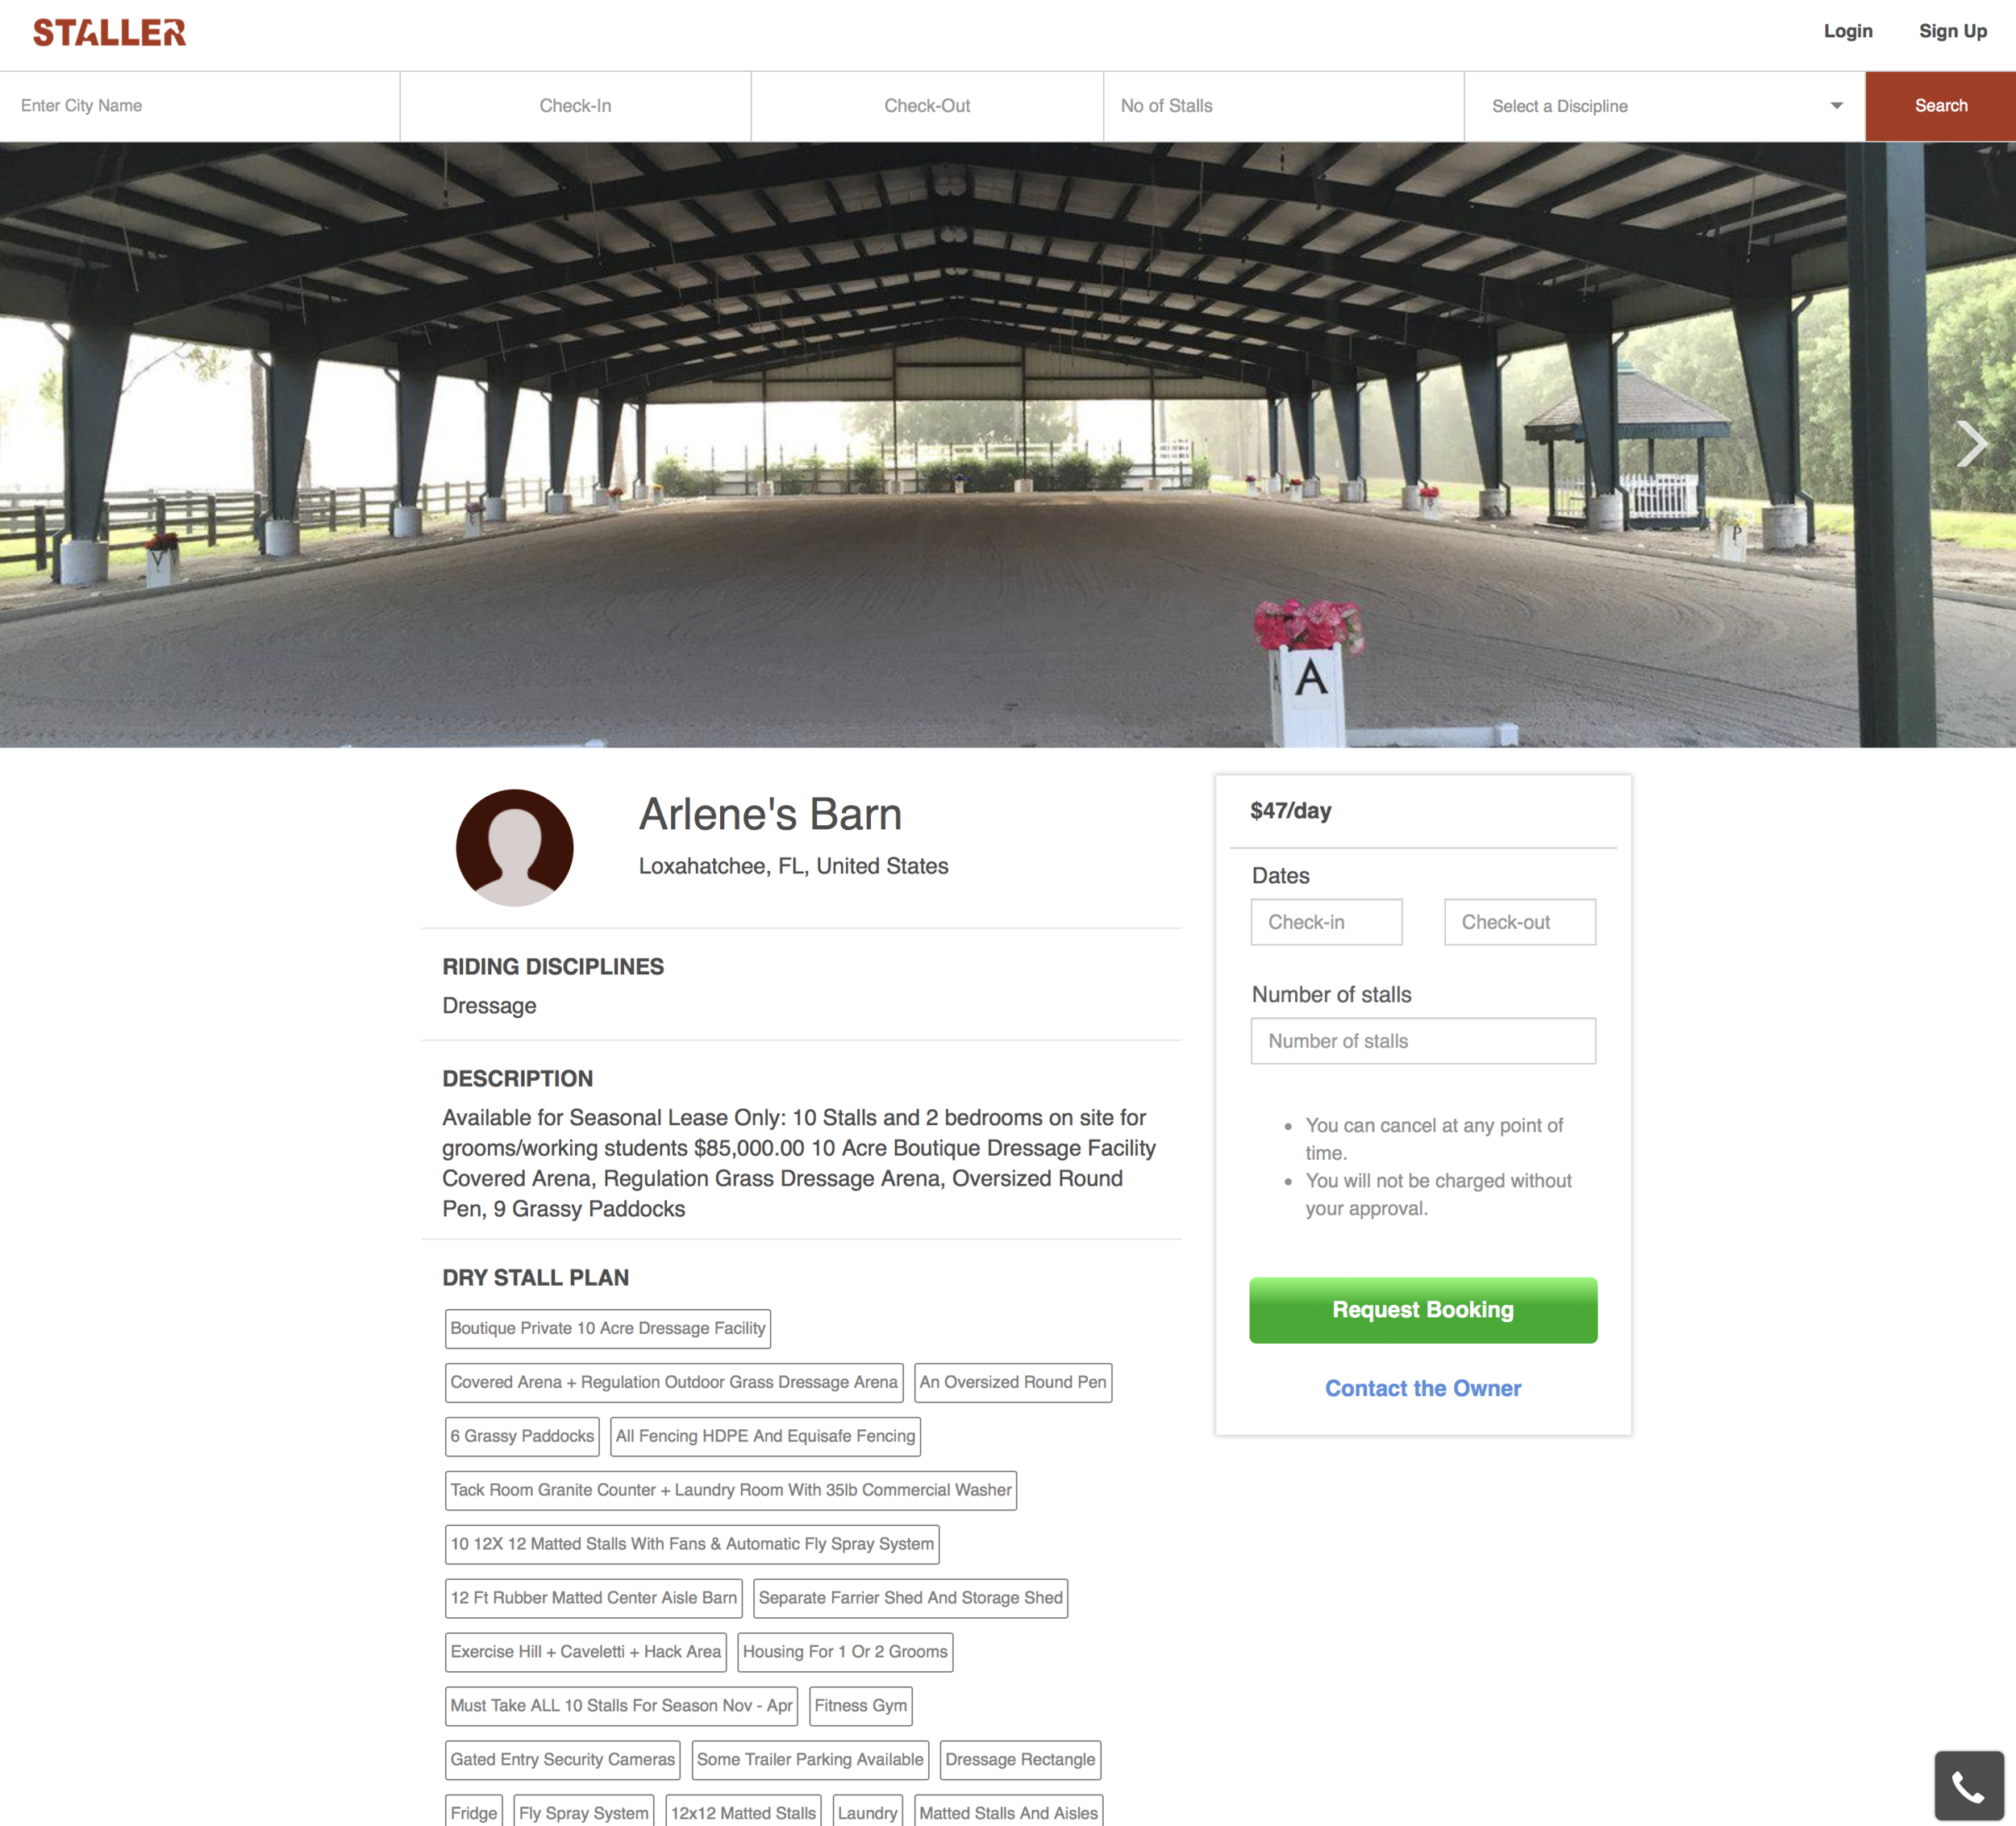 Example of a Staller barn rental